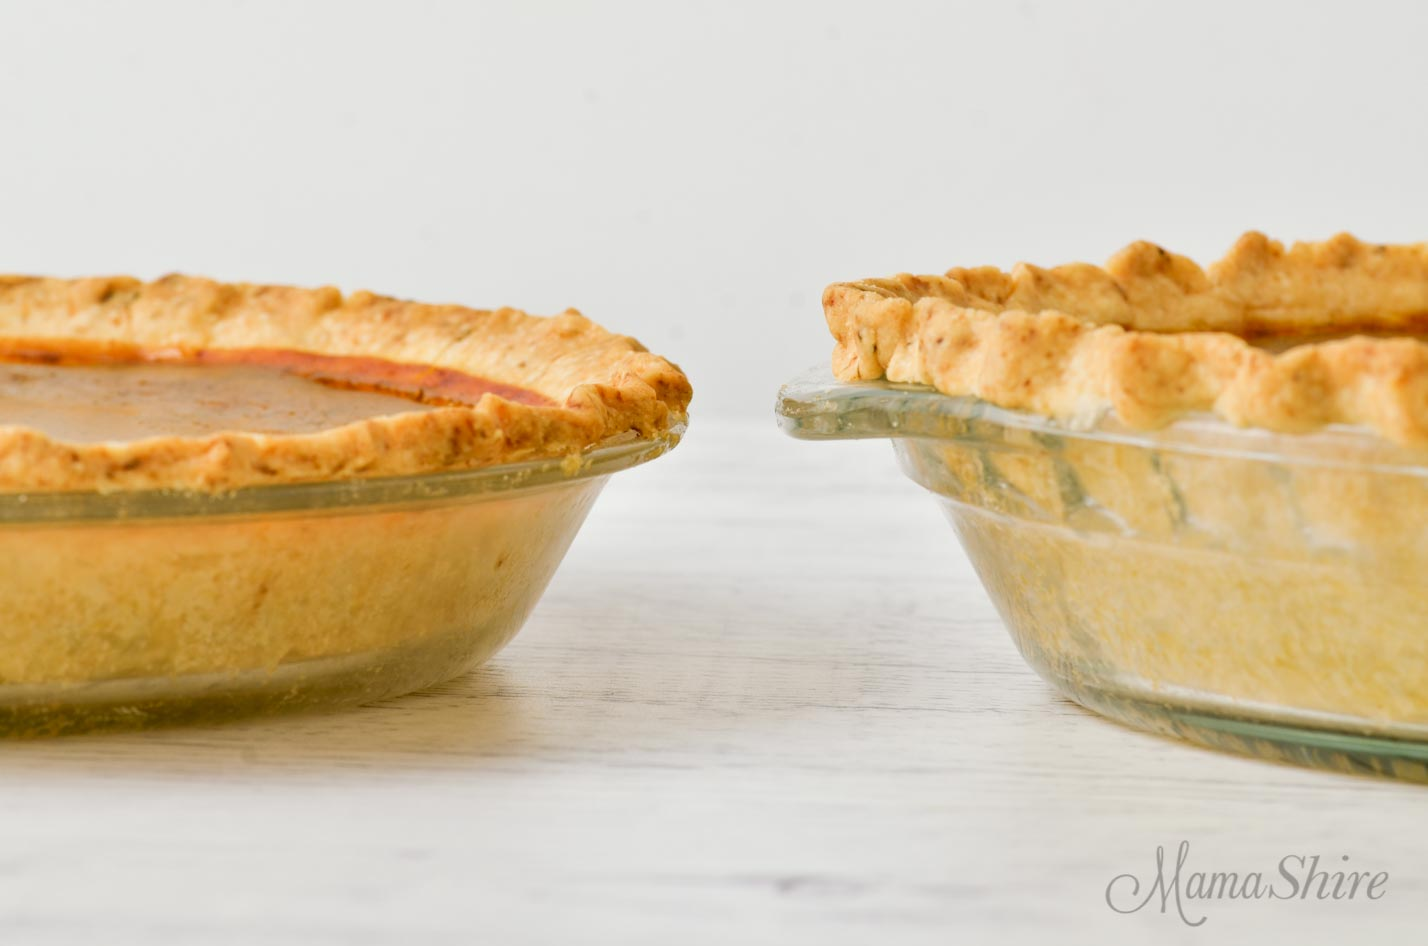 Two pie pans - one shallow and one deeper. Both have gluten-free pumpkin pie in them.